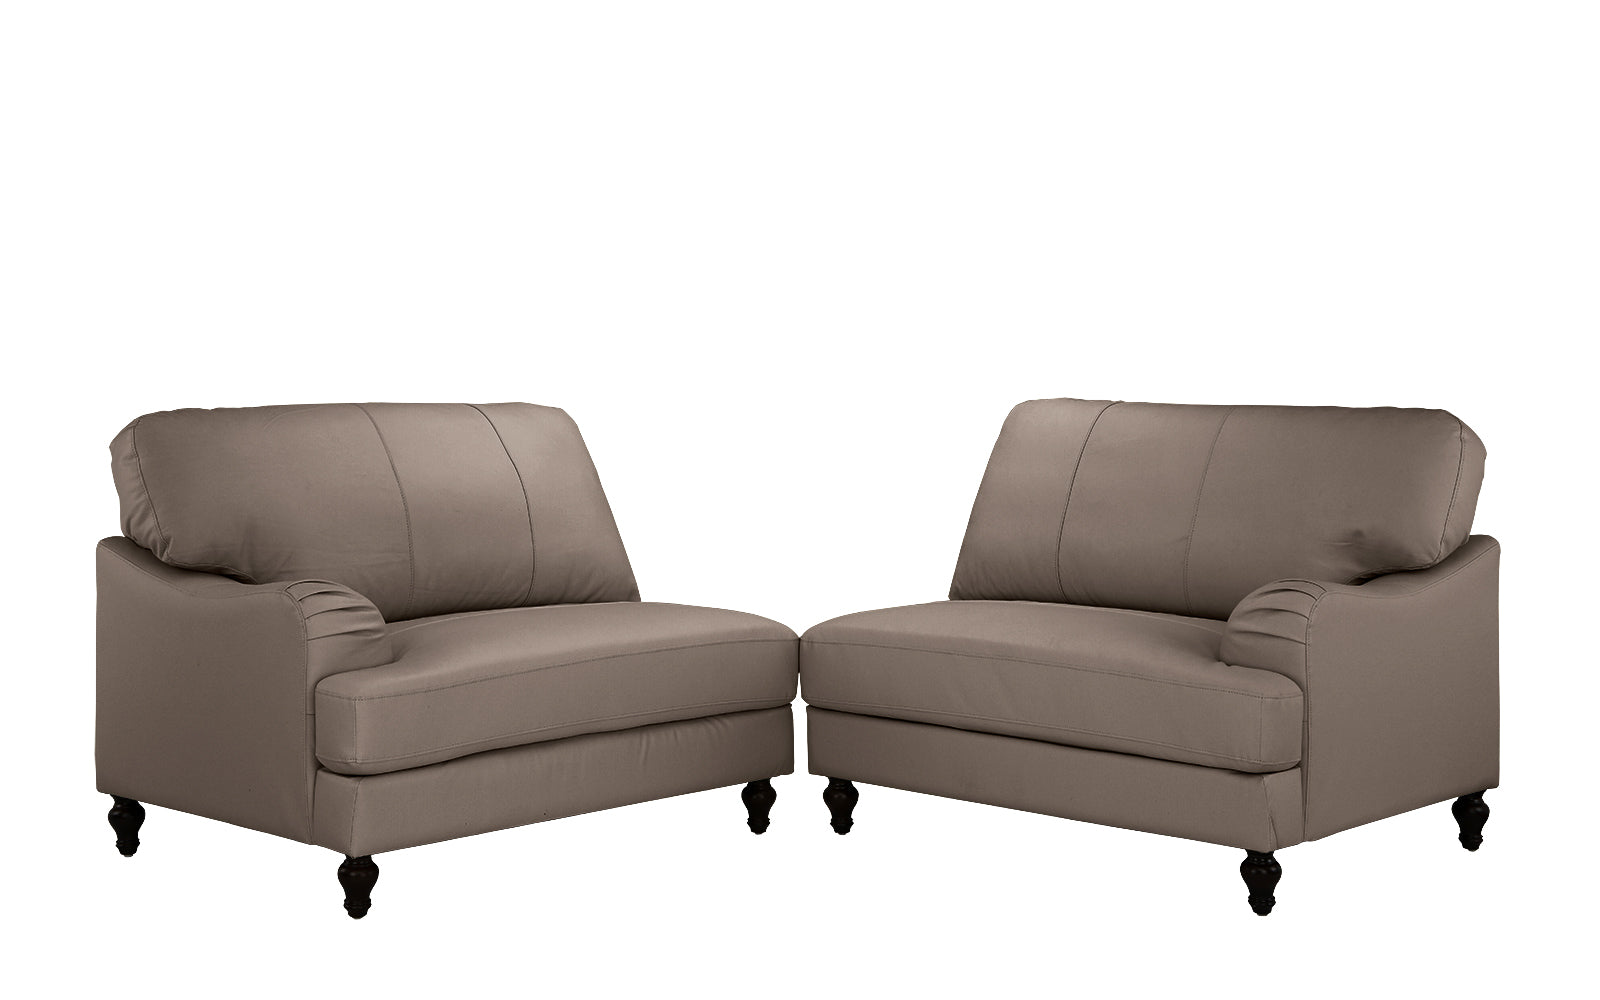 Evelyn Classic Convertible Leather Match Sofa